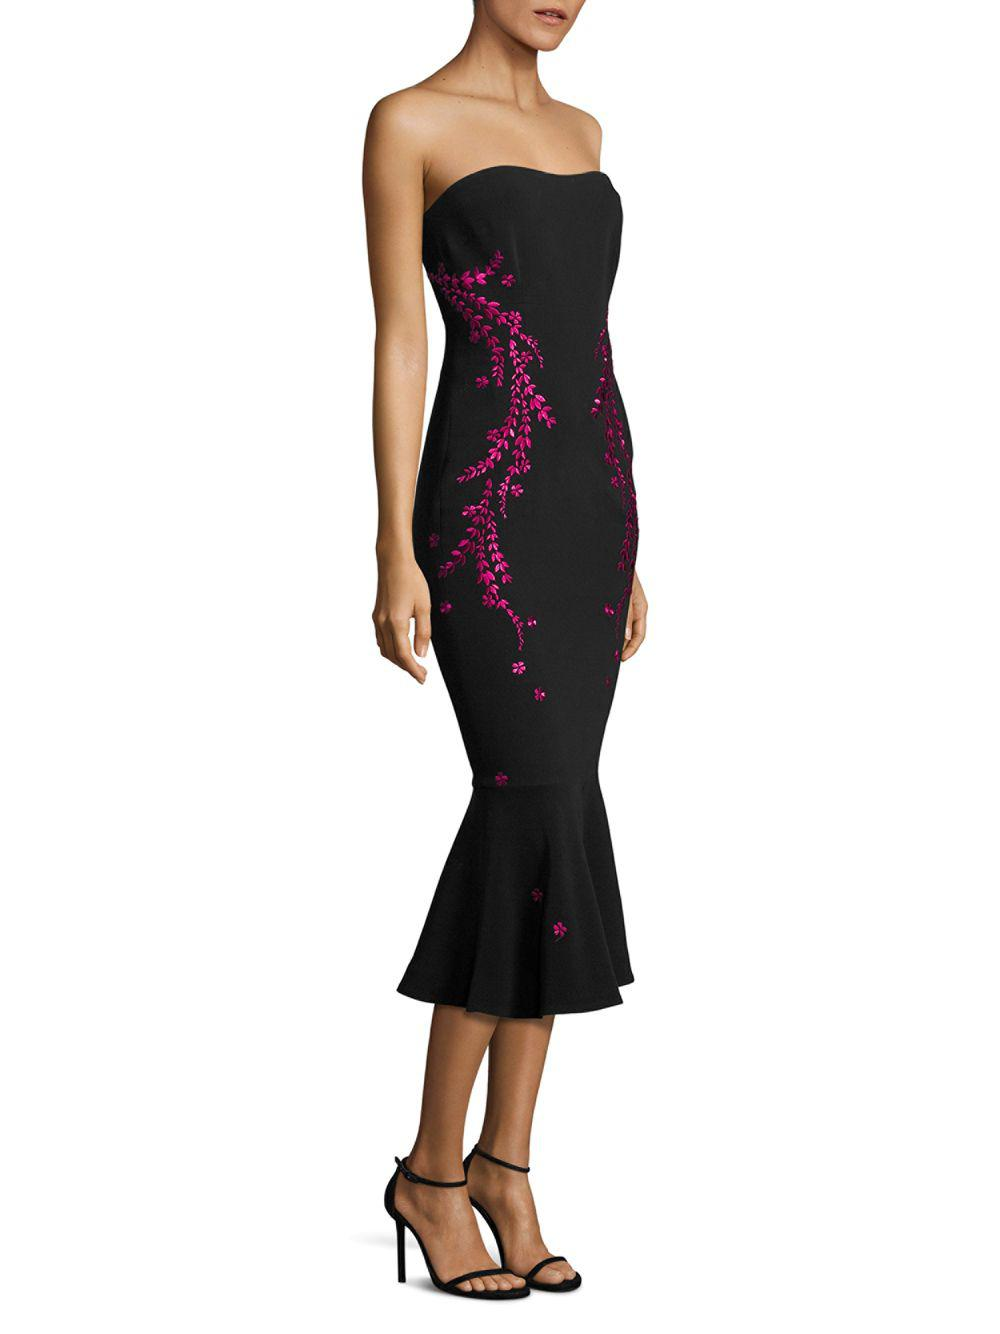 033b62135b3e Cinq À Sept Luna Embroidered Strapless Dress in Black - Lyst